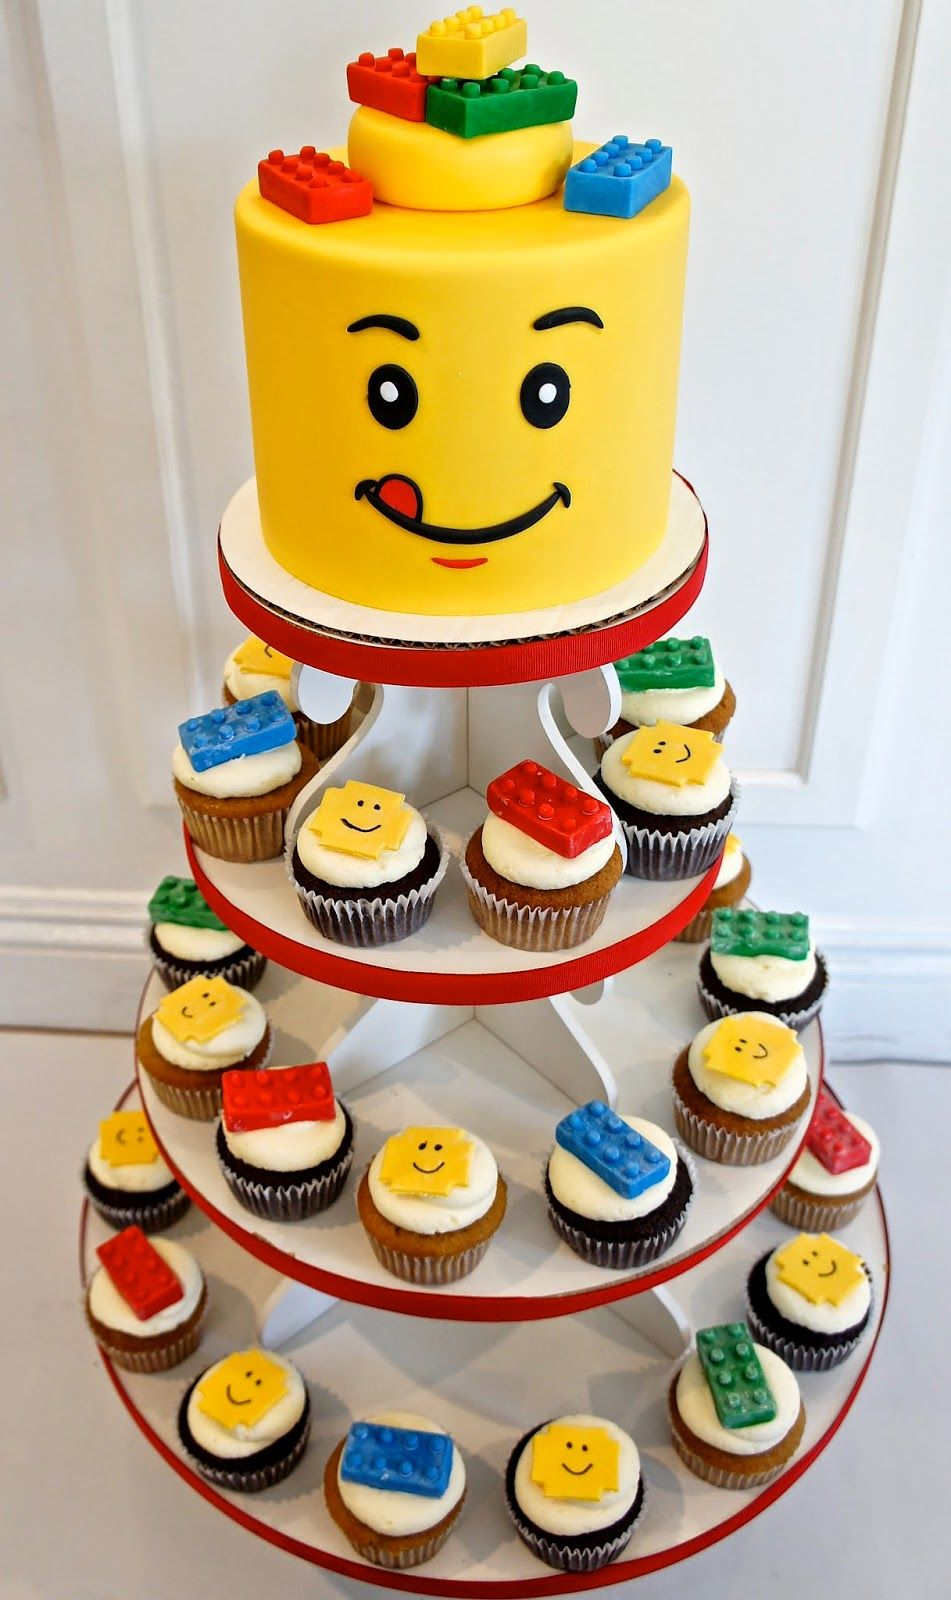 cute lego cake with cupcakesexcept for the legos on his head